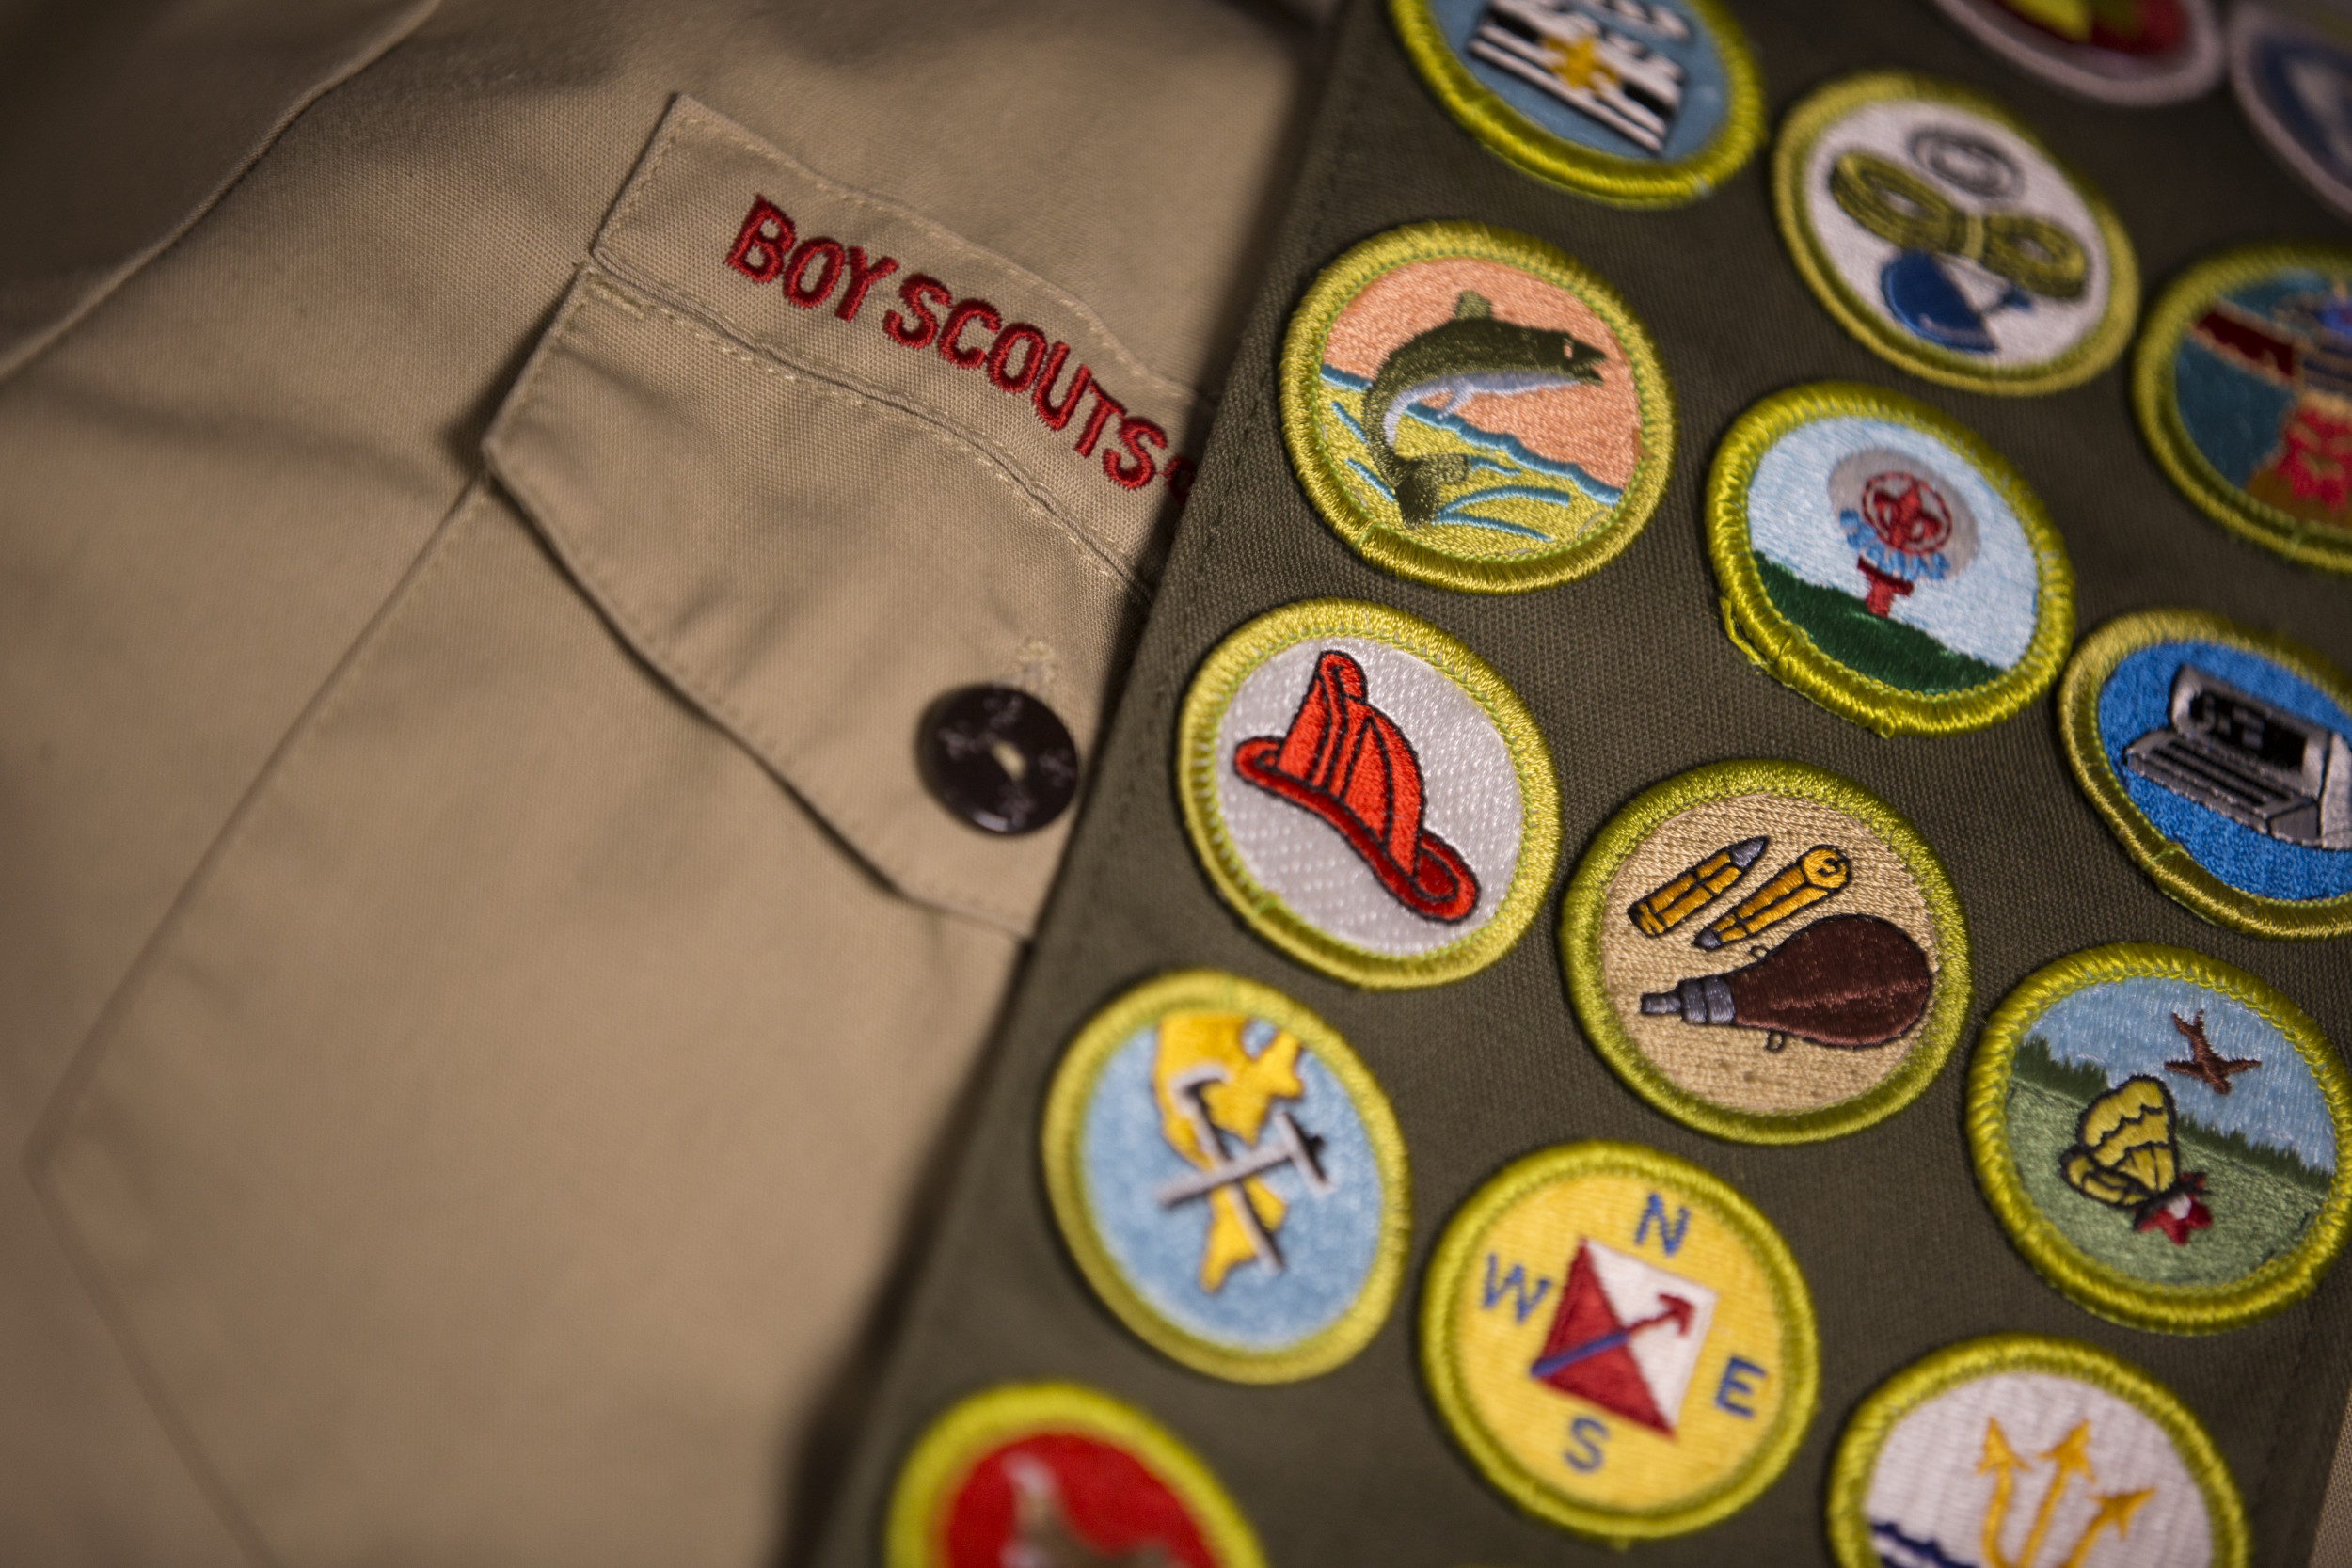 More Lawsuits Allege Boy Scouts Covered Up Decades of Child